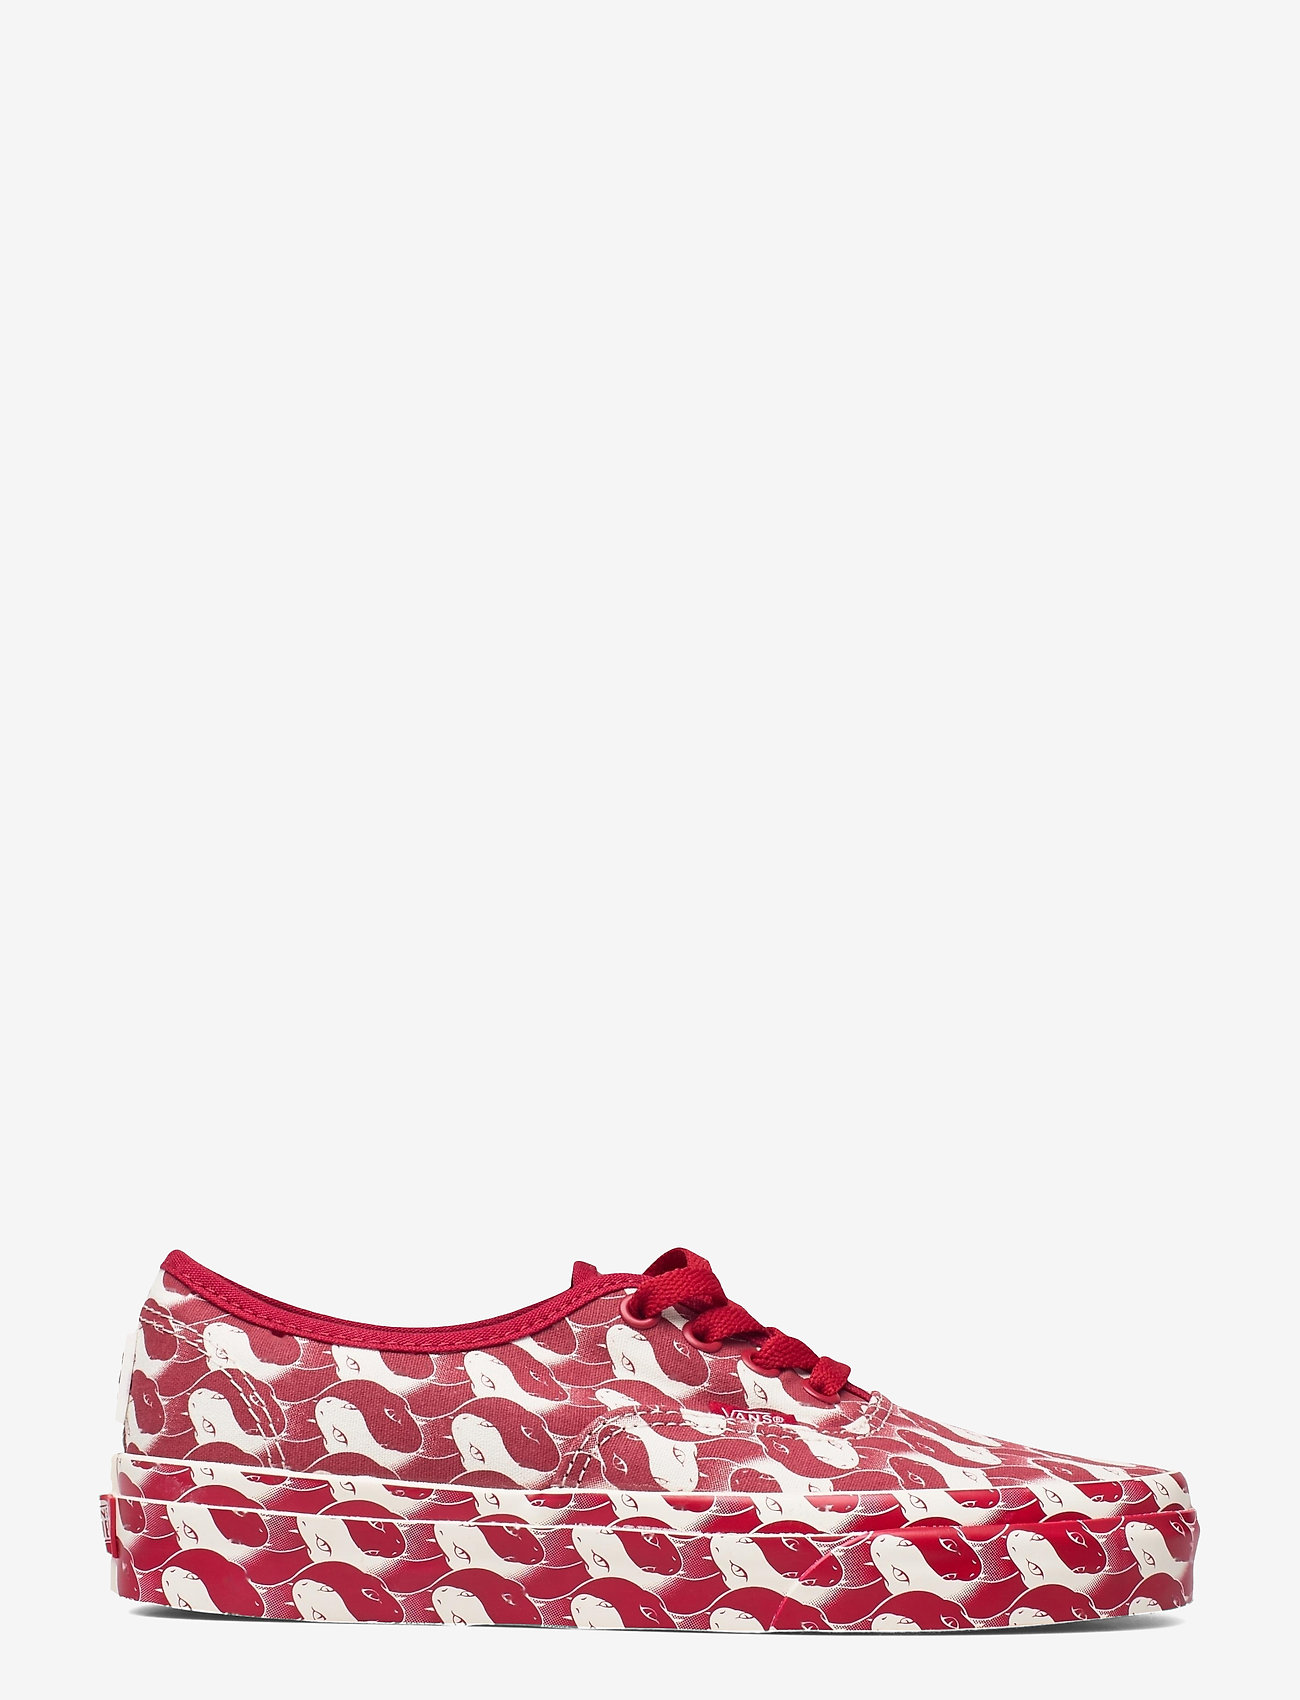 VANS - UA Authentic - lage sneakers - (opening ceremony)snkchkr - 1